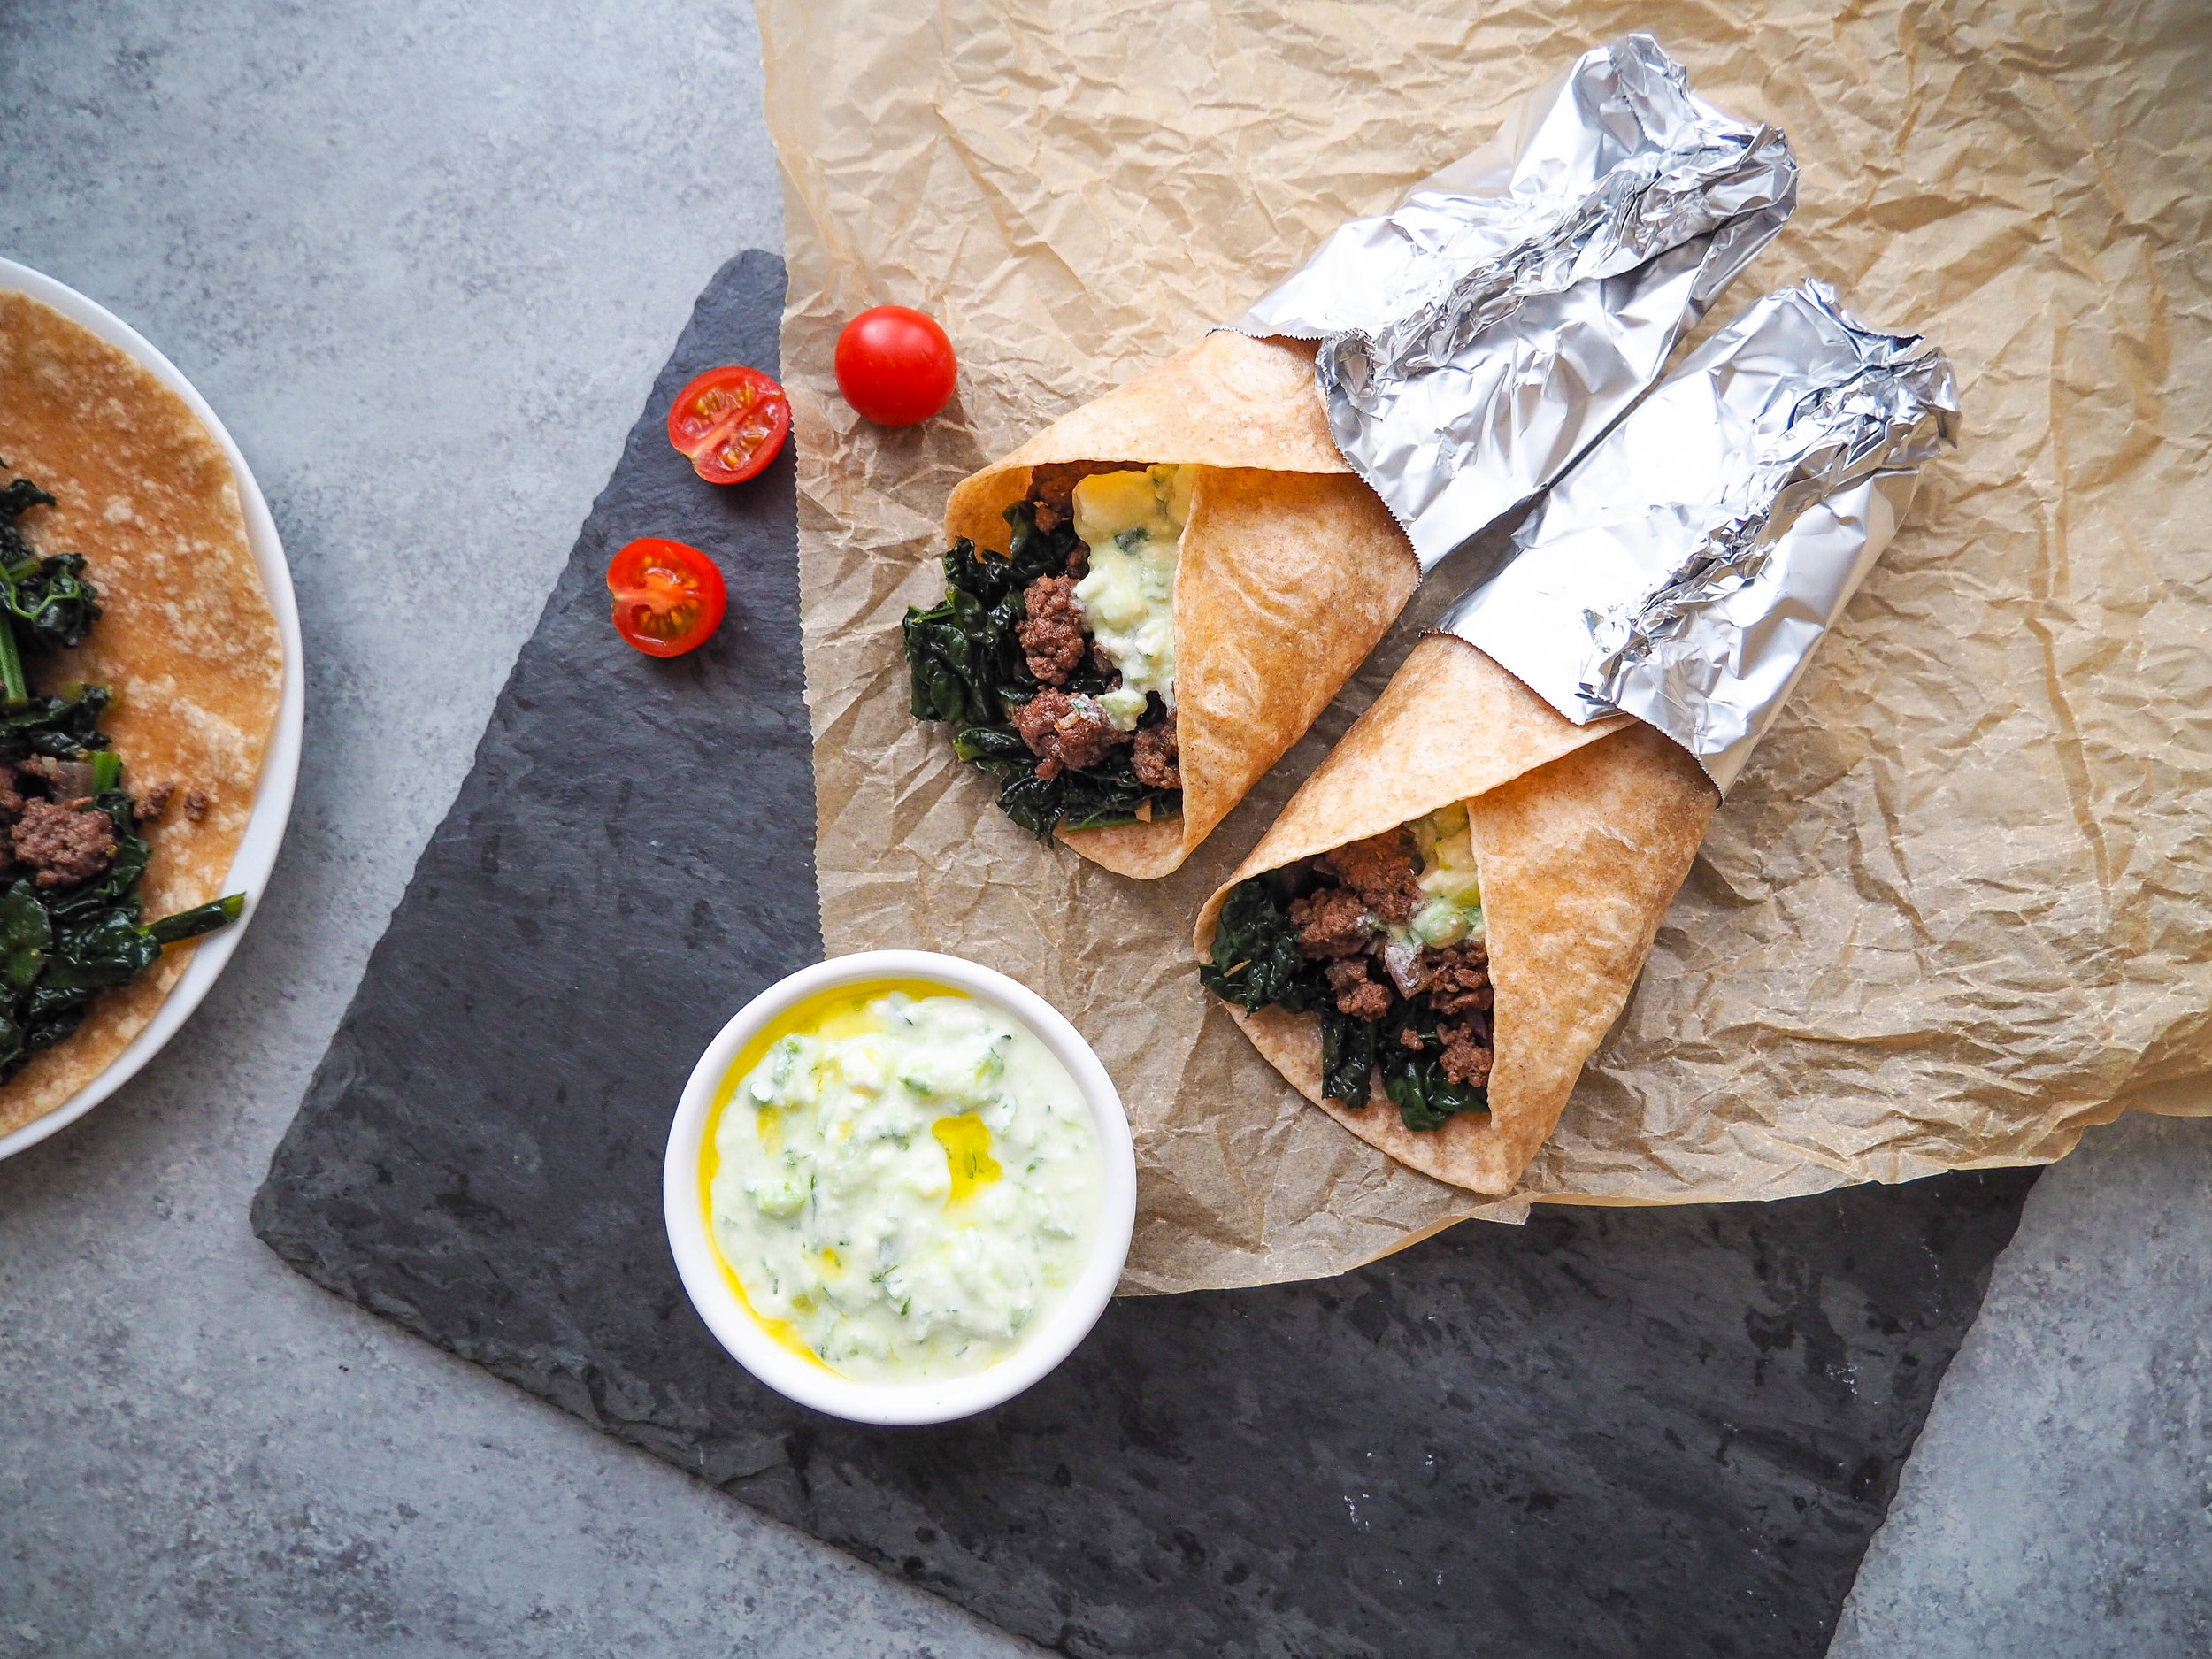 These Greek Tacos with Kale and Creamy Feta Sauce are SO good! Total comfort food! The creamy feta sauce just makes it! #taco #greek #kale